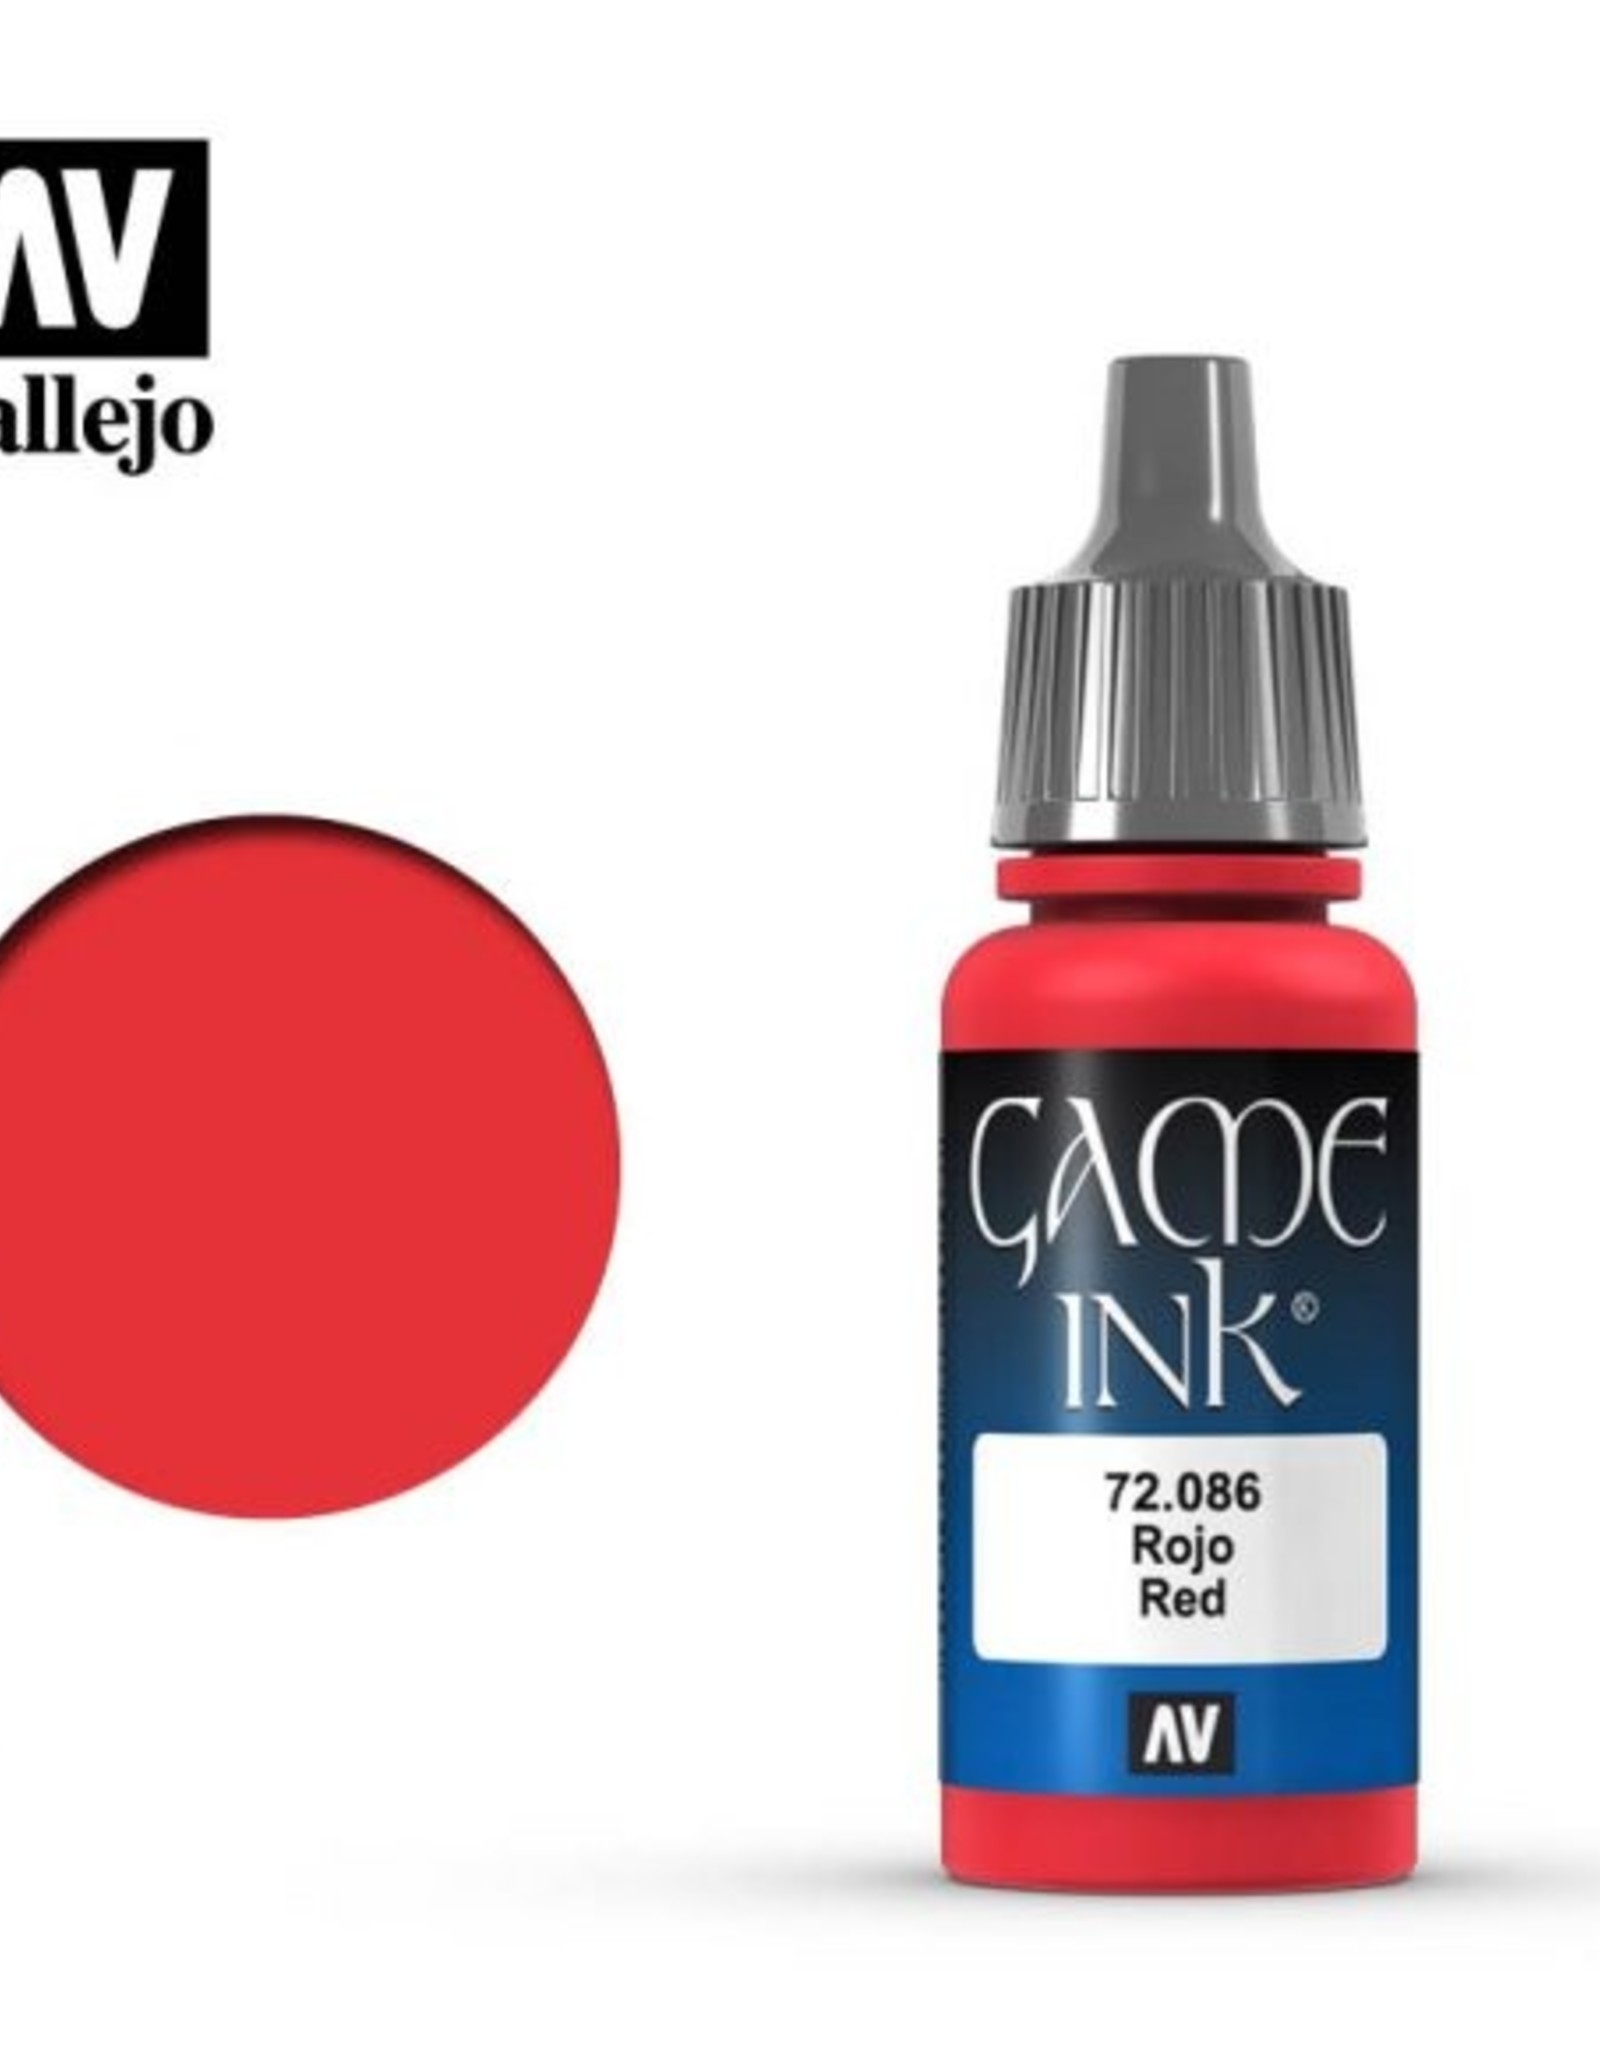 Vallejo 72.086 Red Ink